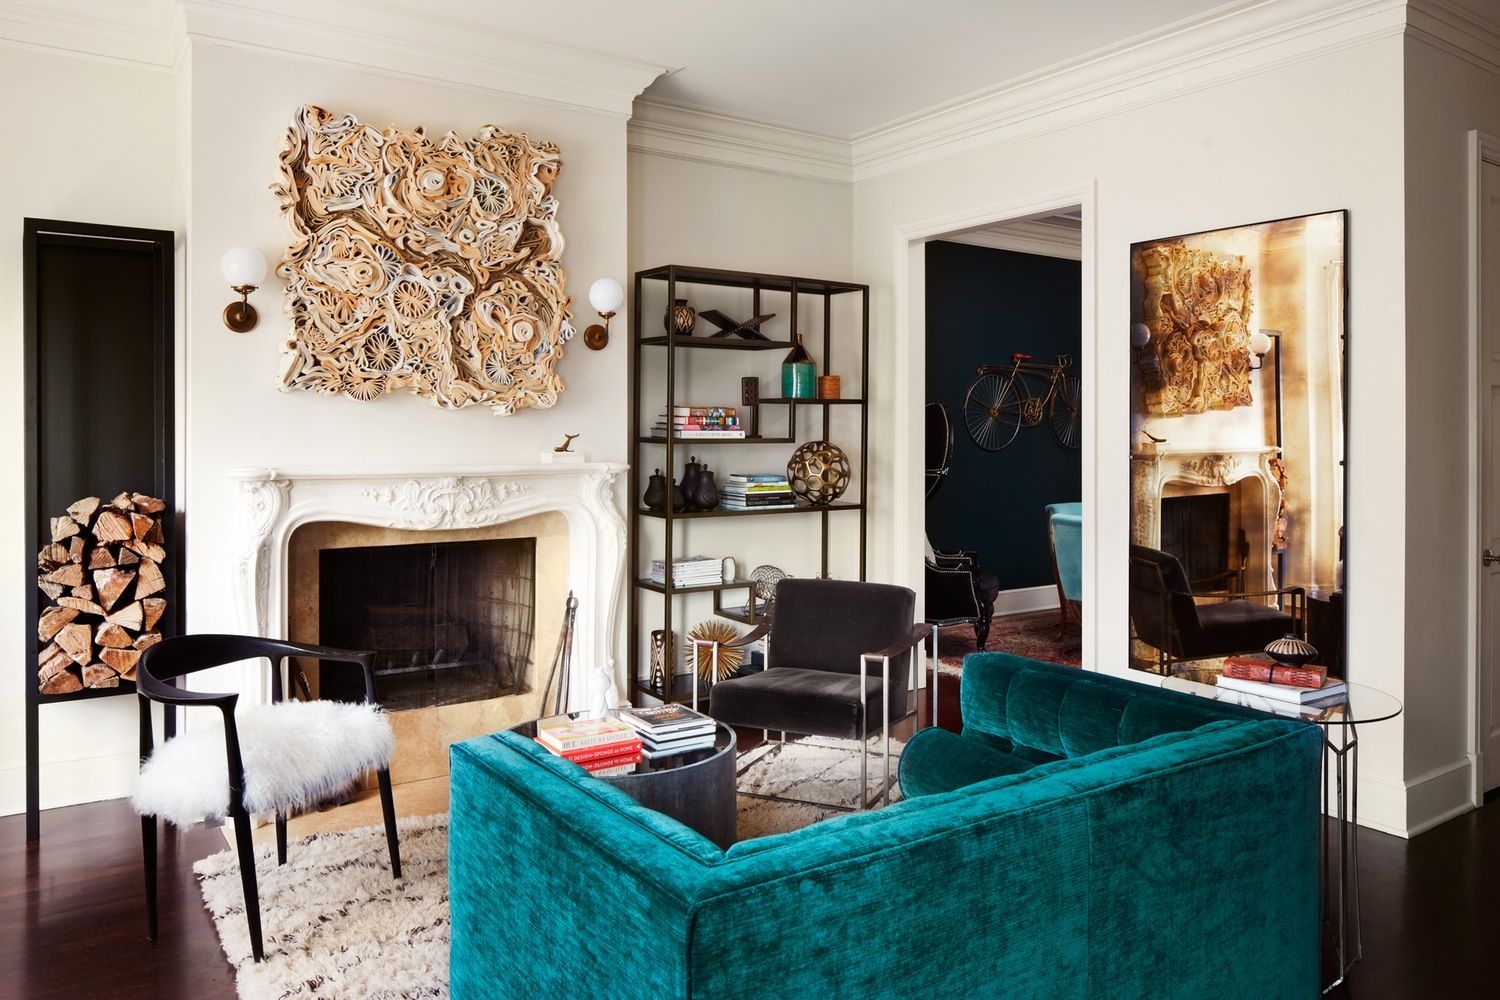 fashionable new york style collides with traditional